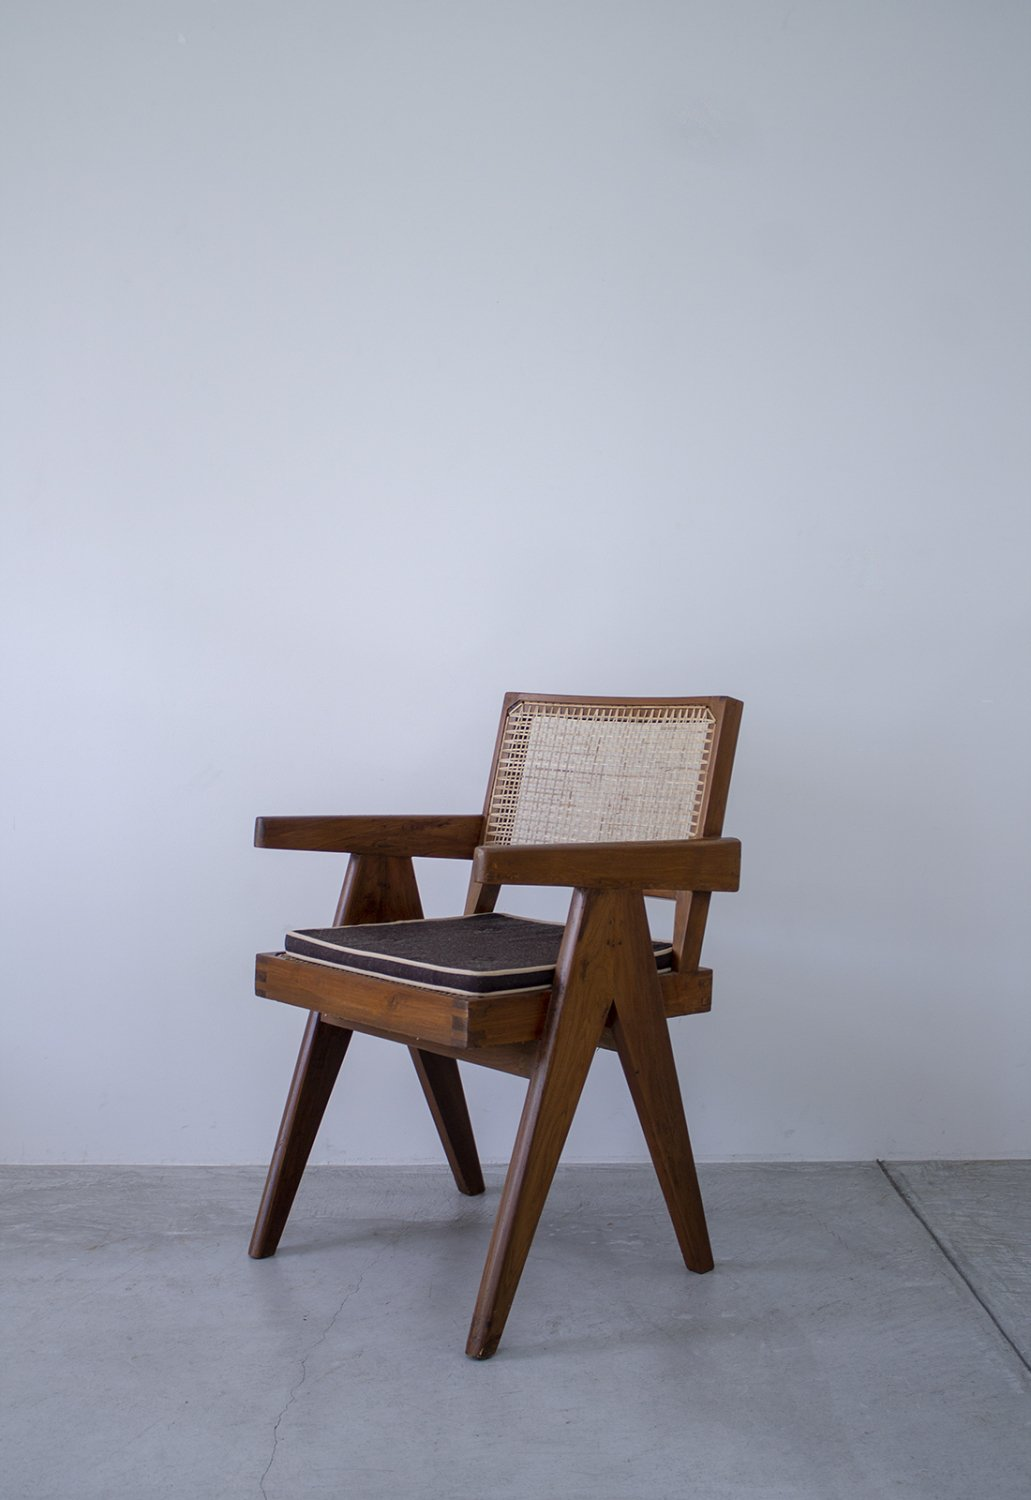 Pierre Jeanneret -V-leg Office Chair刻印付き